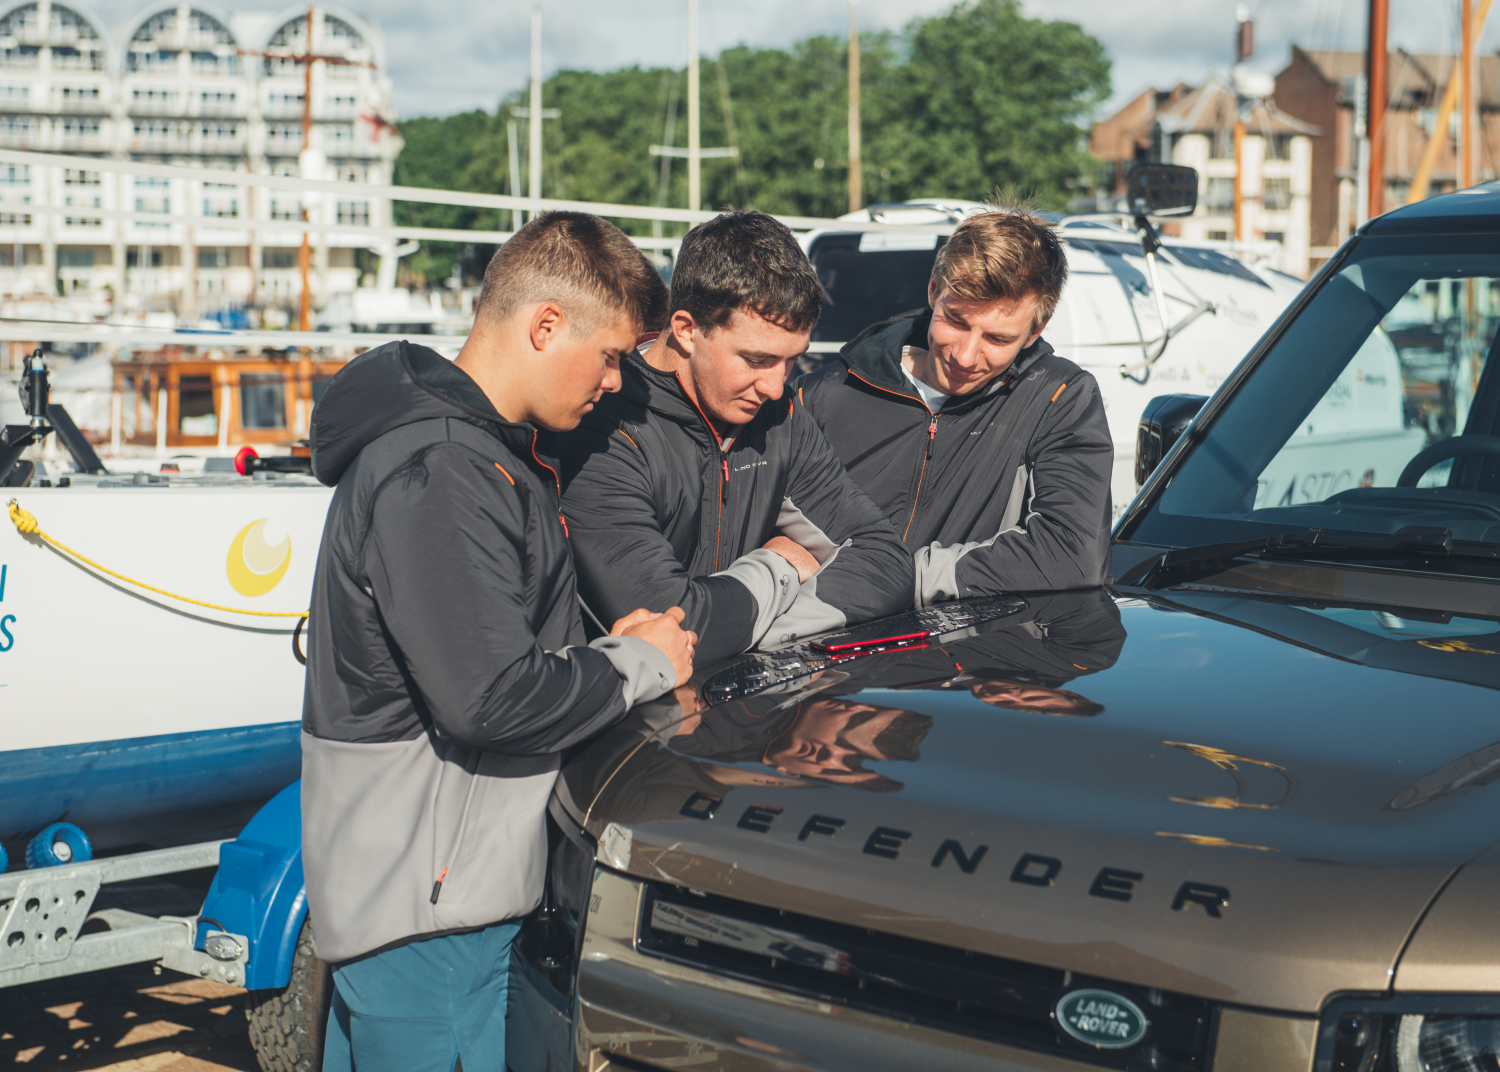 Land Rover X Elliot Brown Watch: Perfect Timing for Red Cross Rowers - Image 1